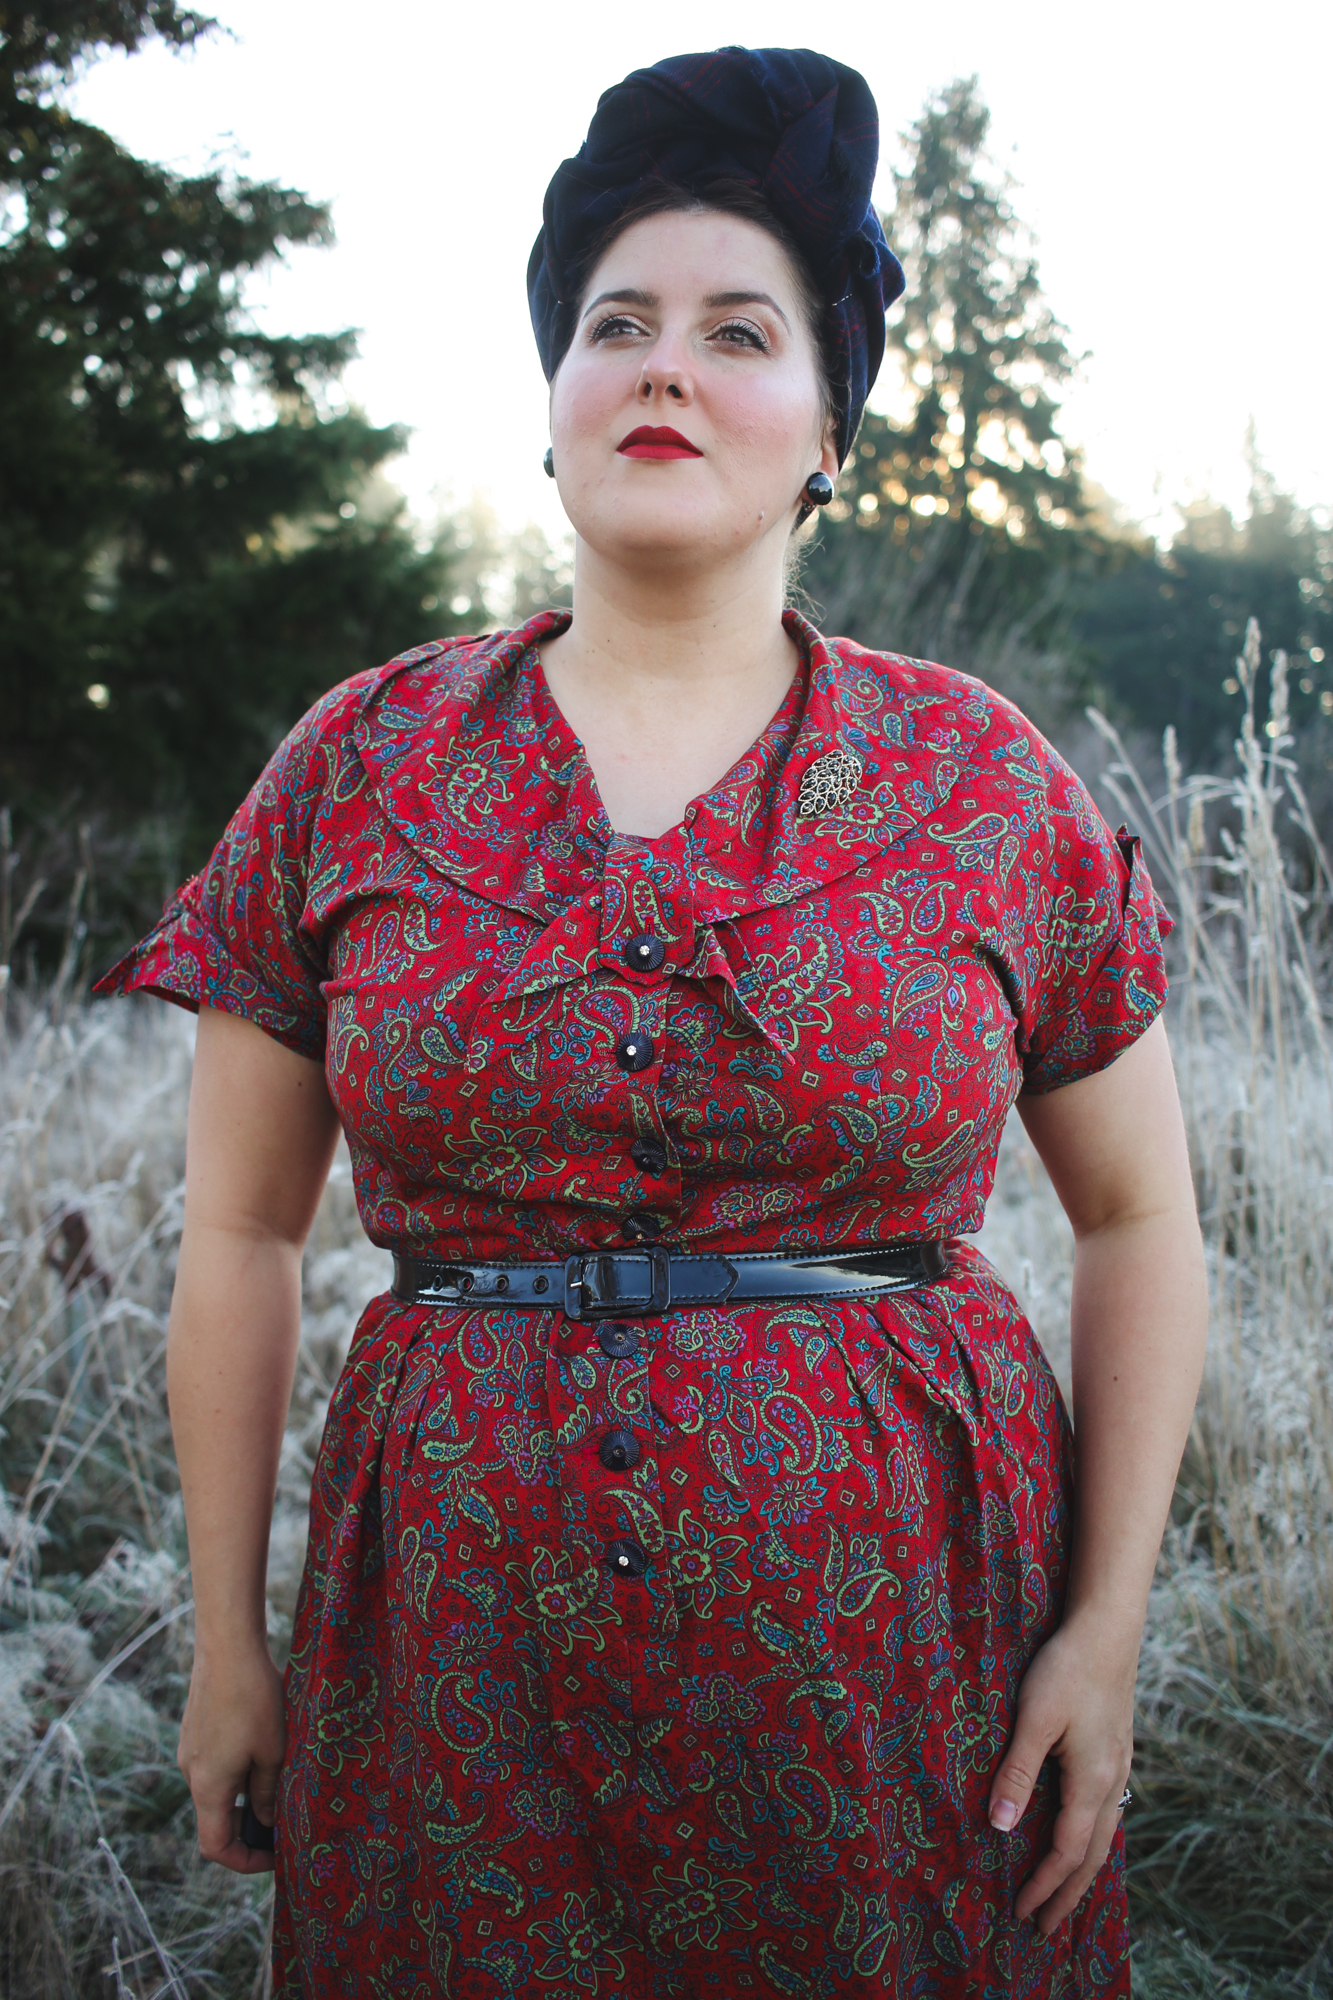 Vintage 1950s Lane Bryant red paisley dress